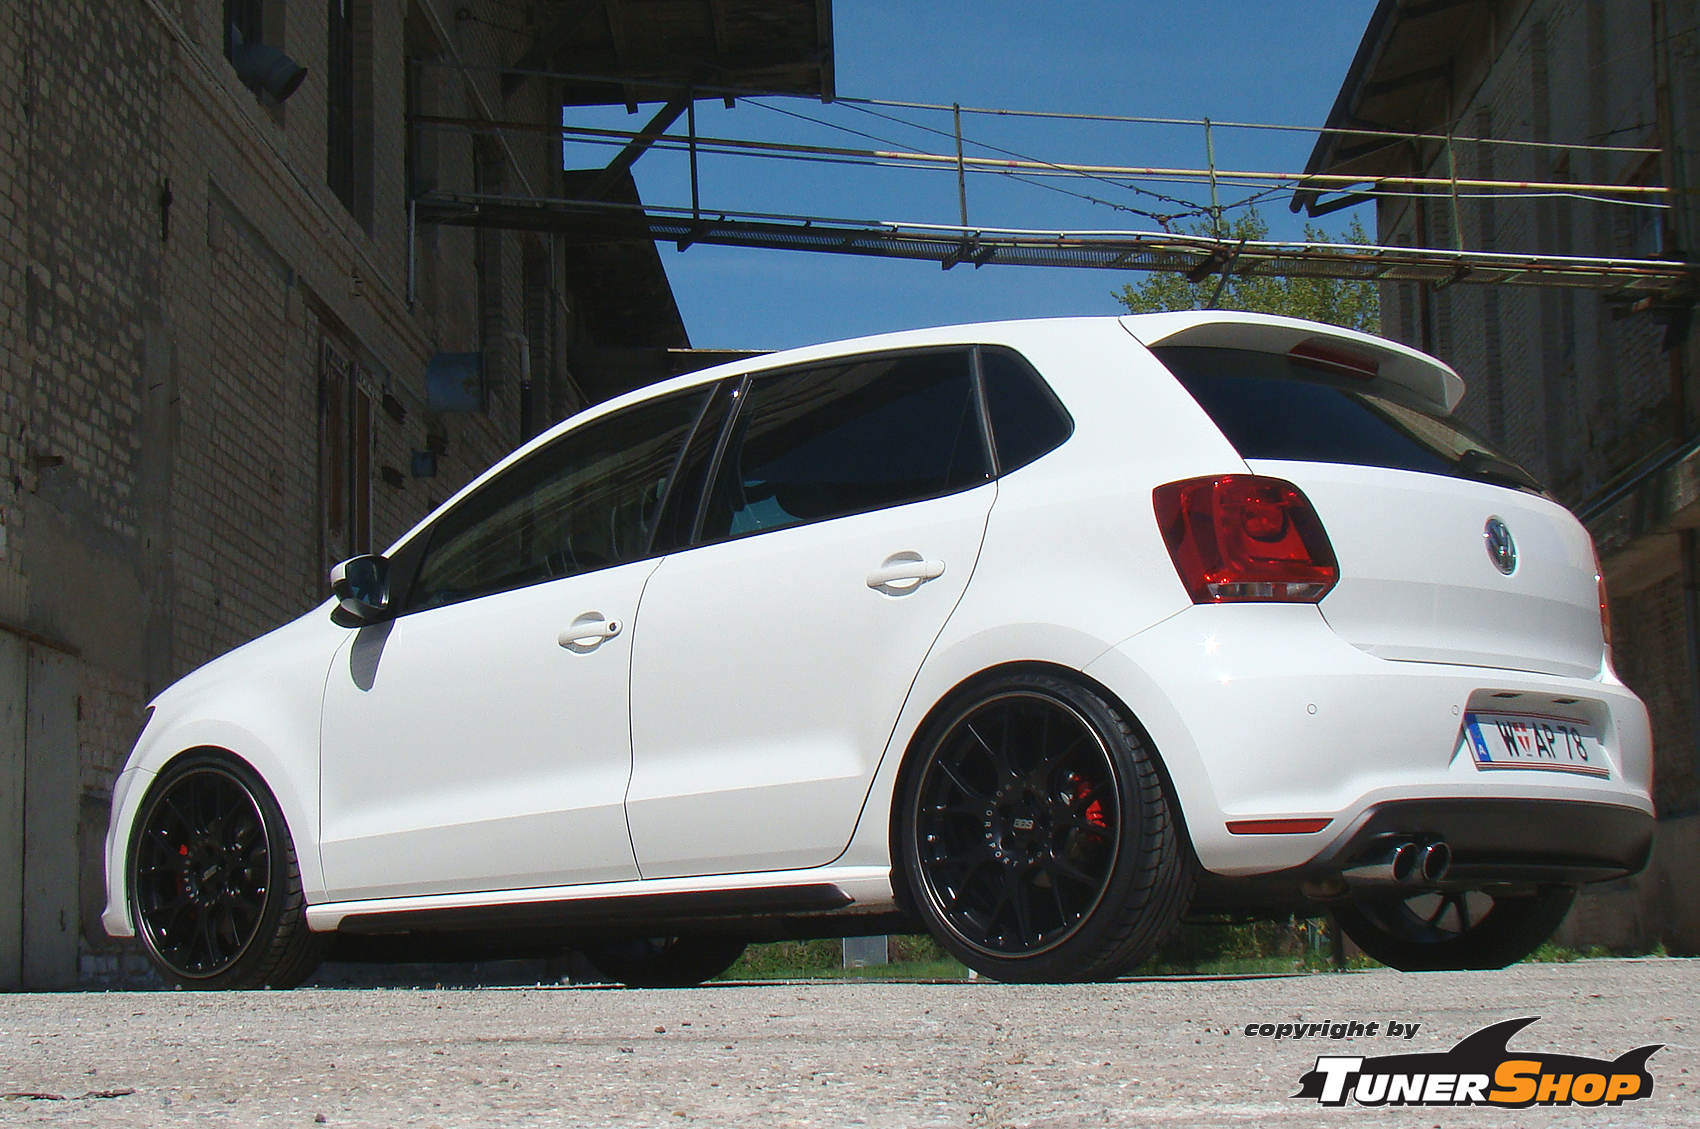 VW polo vw : Black BBS CH wheels for Volkswagen VW Polo | TUNERSHOP